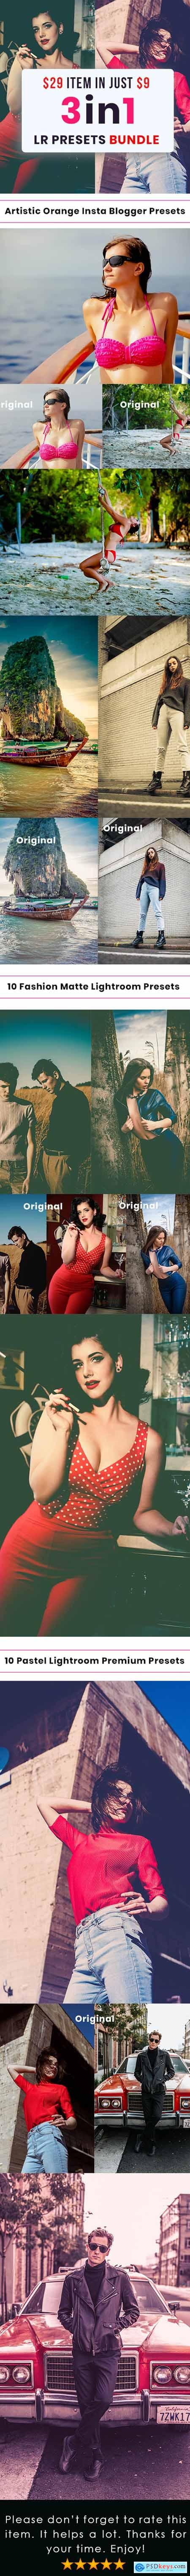 Premium Lightroom Presets Bundle v 01 24421551